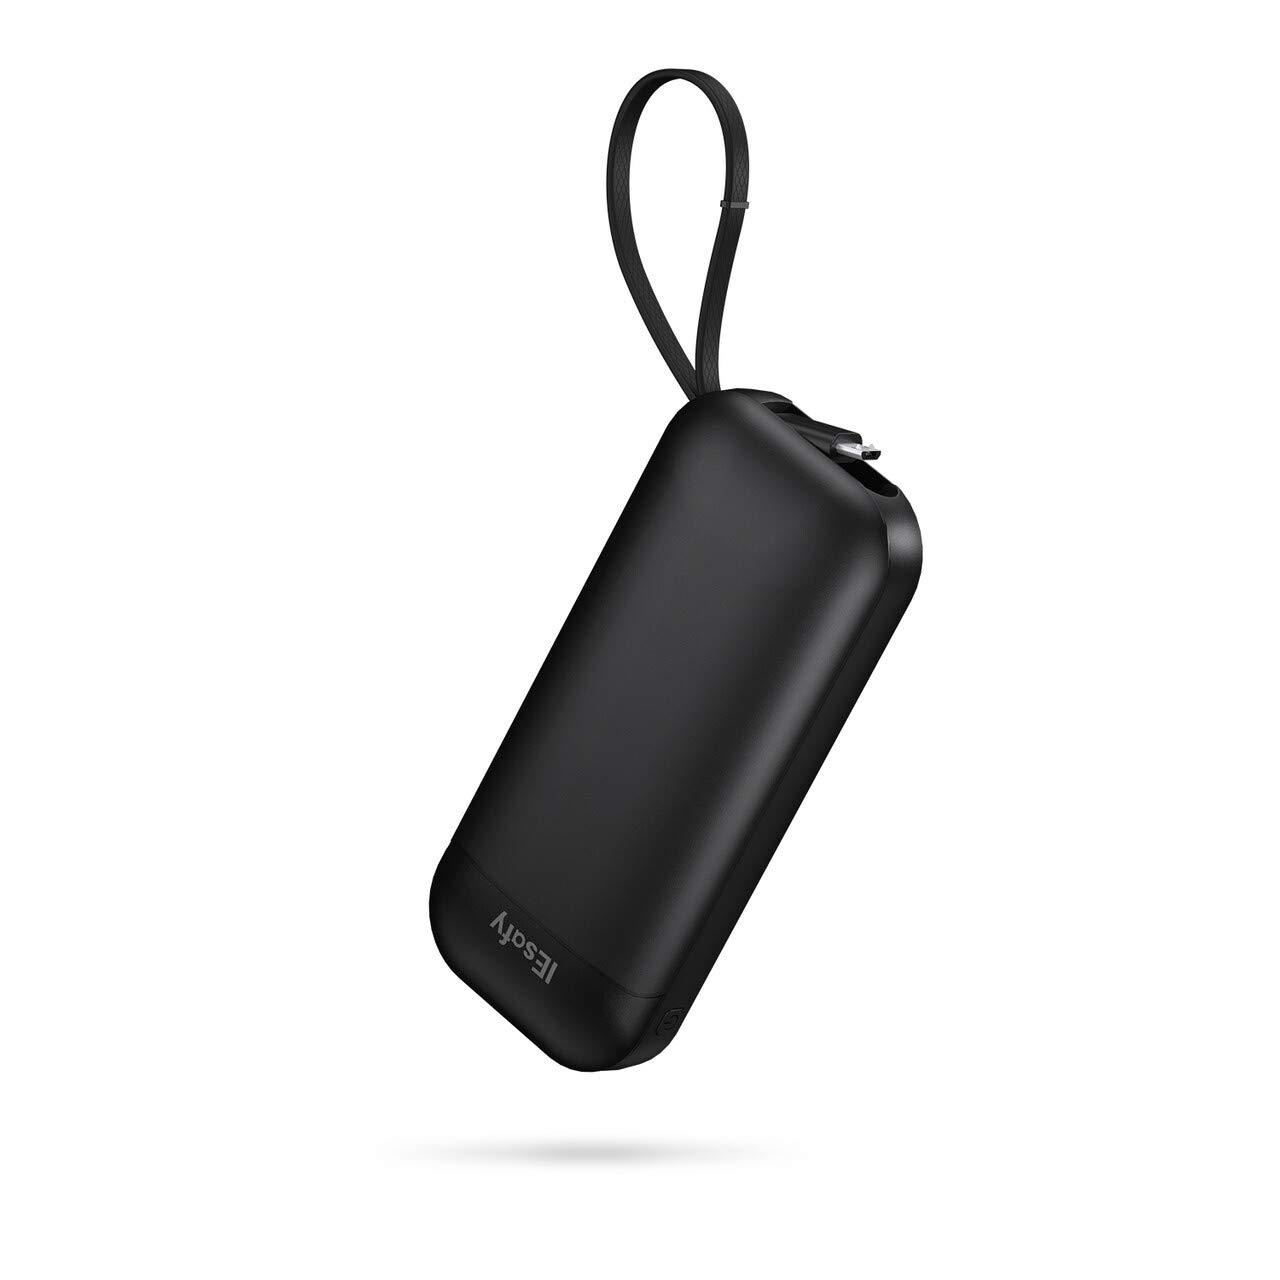 IEsafy N1 10000mah Small High-Speed Charging Portable Charger with Built-in Cable Power Bank Compatible with Samsung, Xiaomi and More